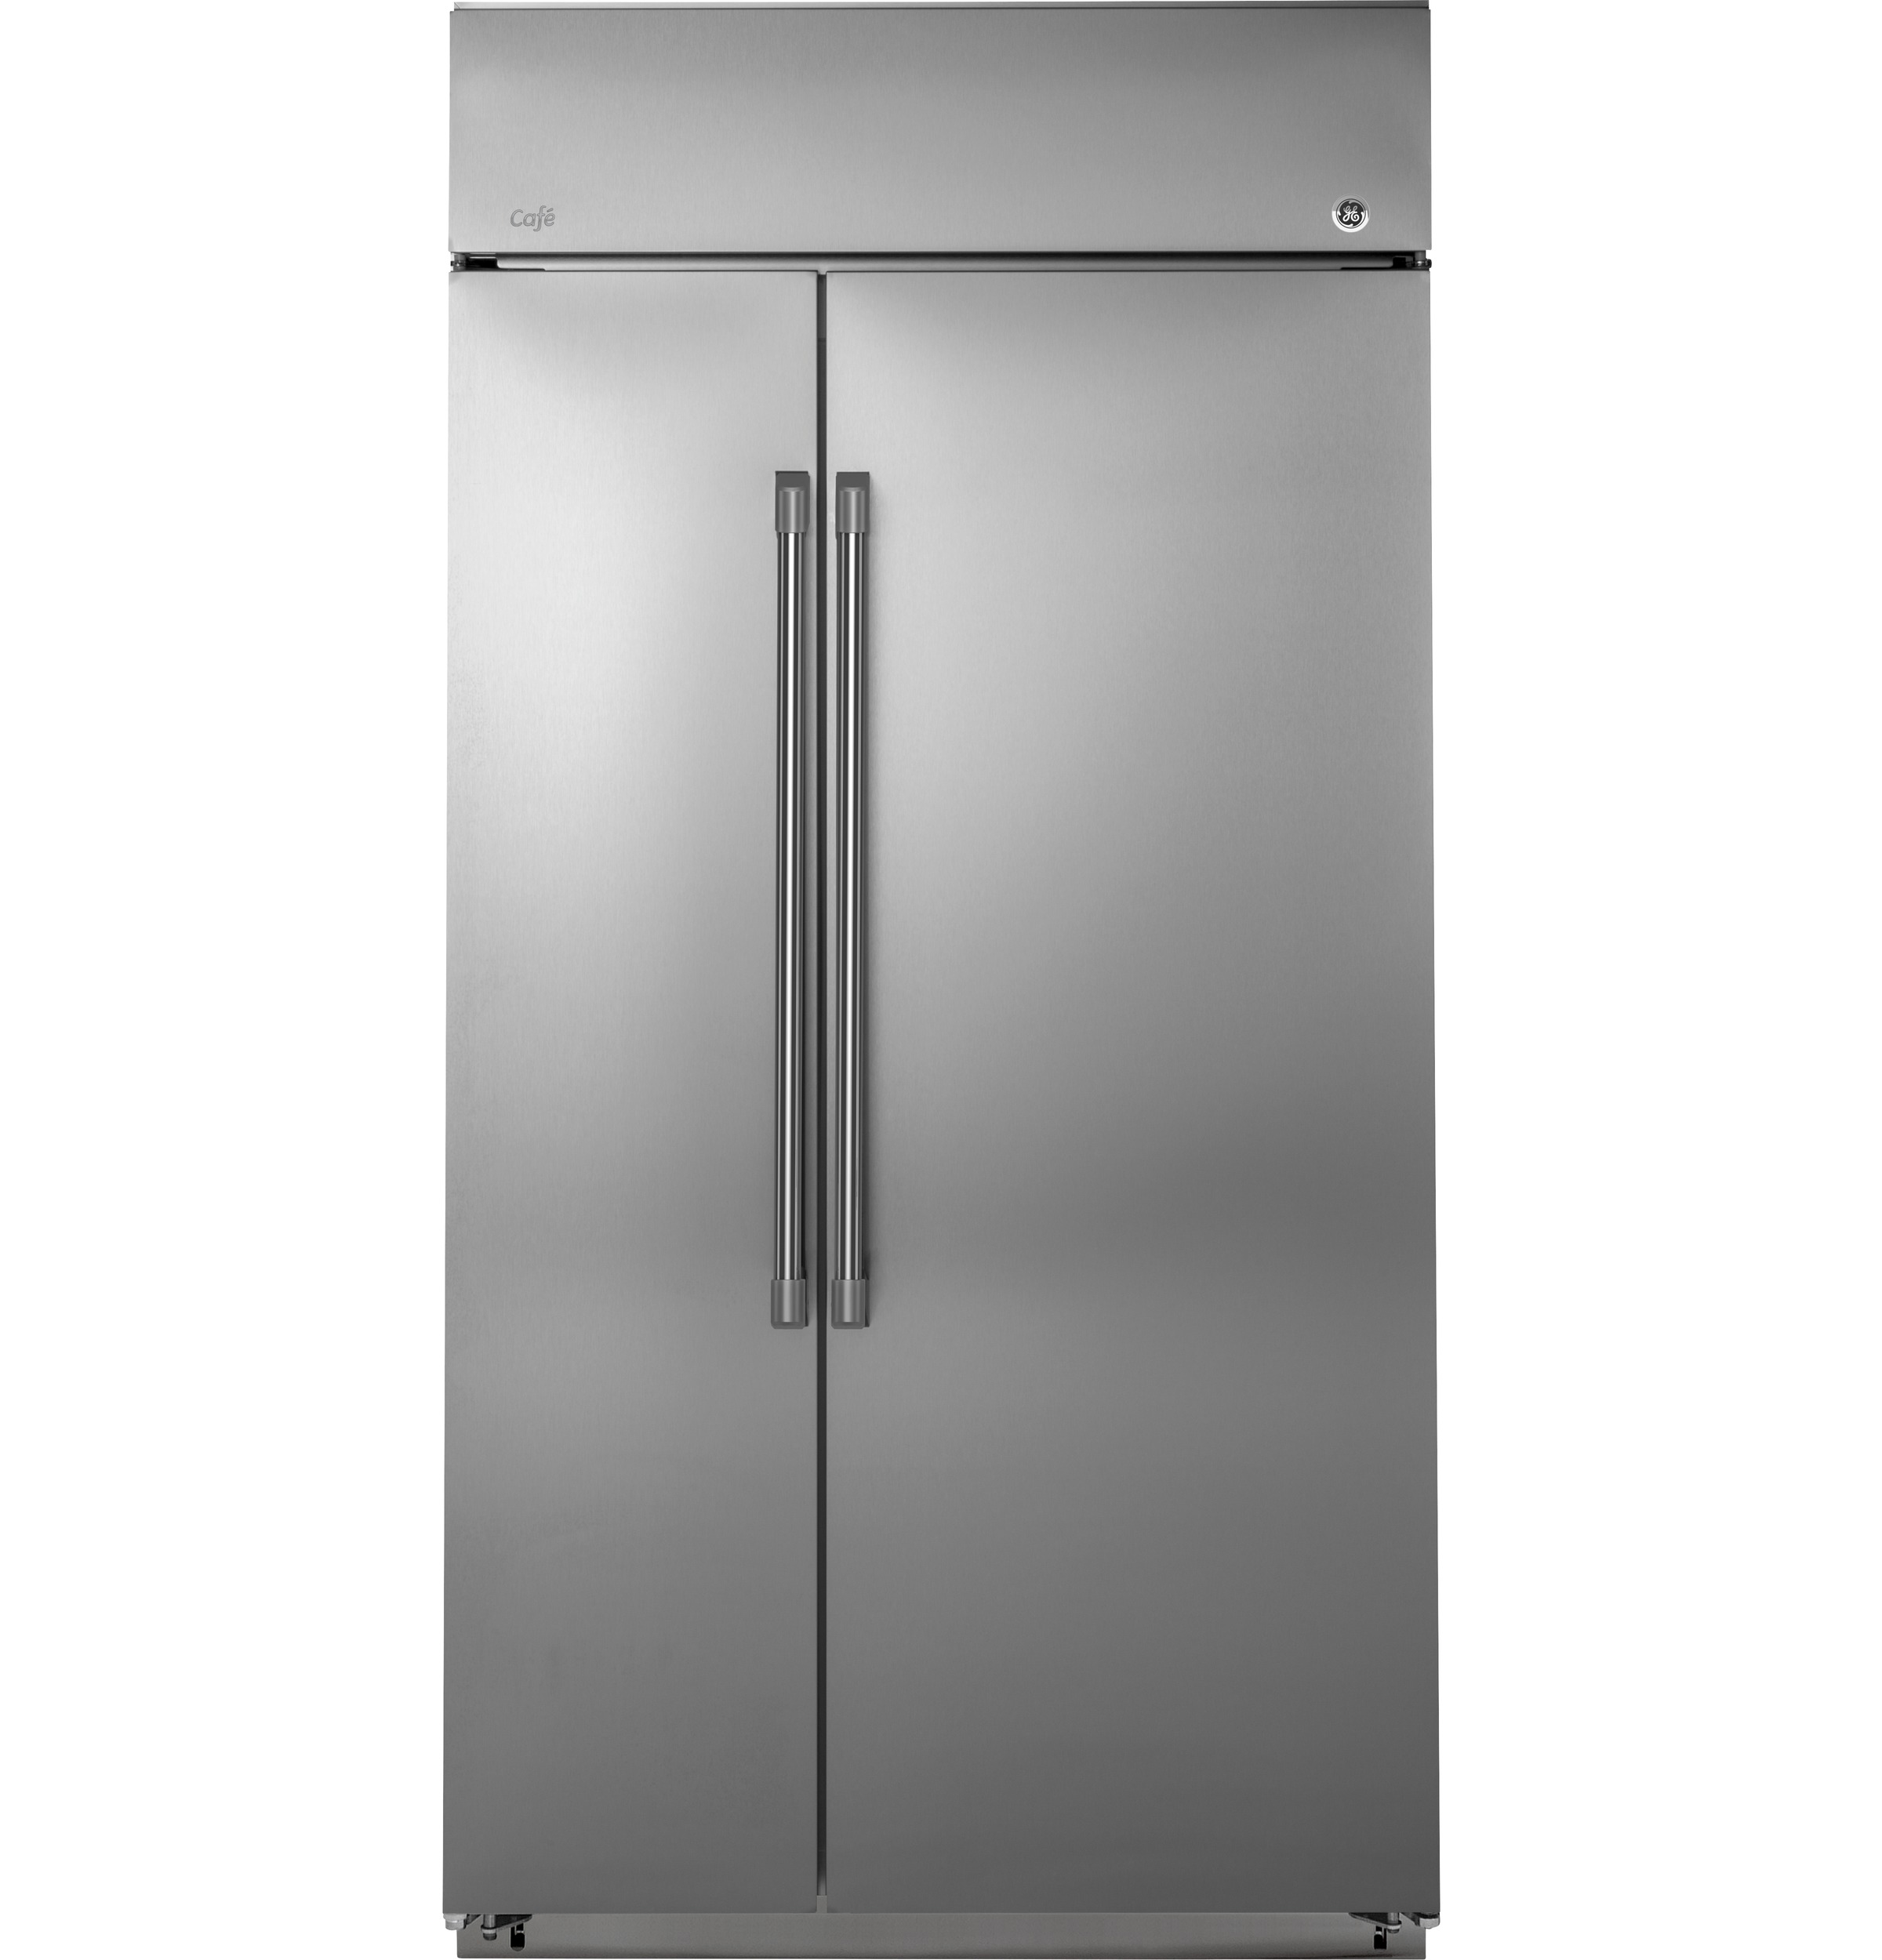 "GE Cafe GE Café™ Series 48"" Built-In Side-by-Side Refrigerator"